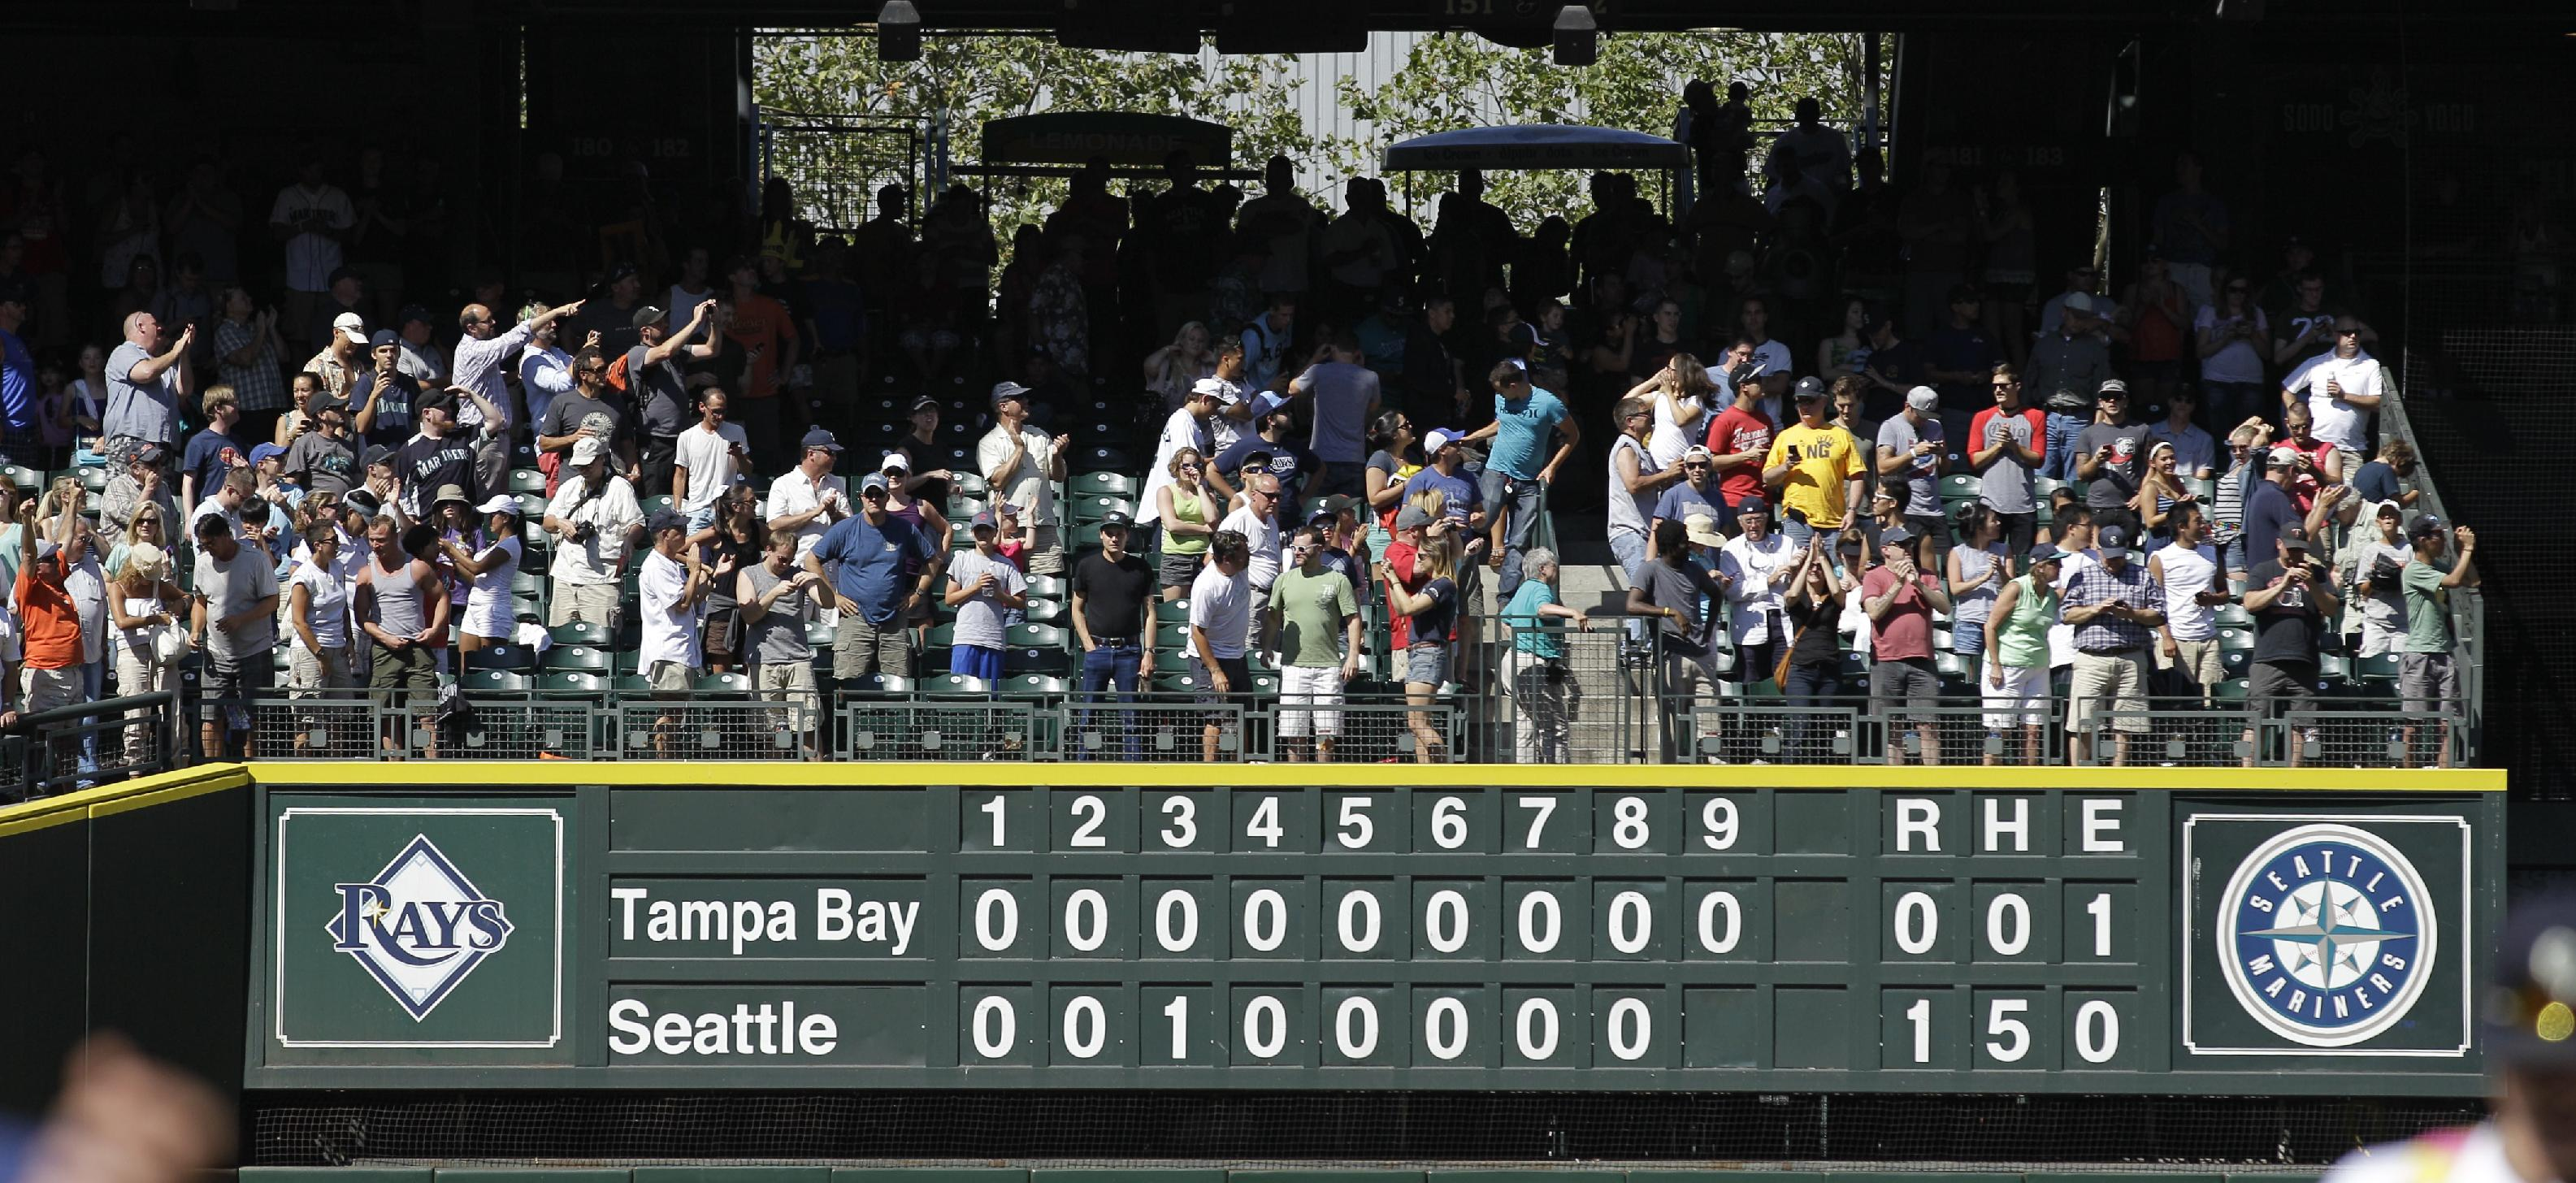 The Rays have been held to a scoreboard full of zeroes four times in the past three years. (AP)